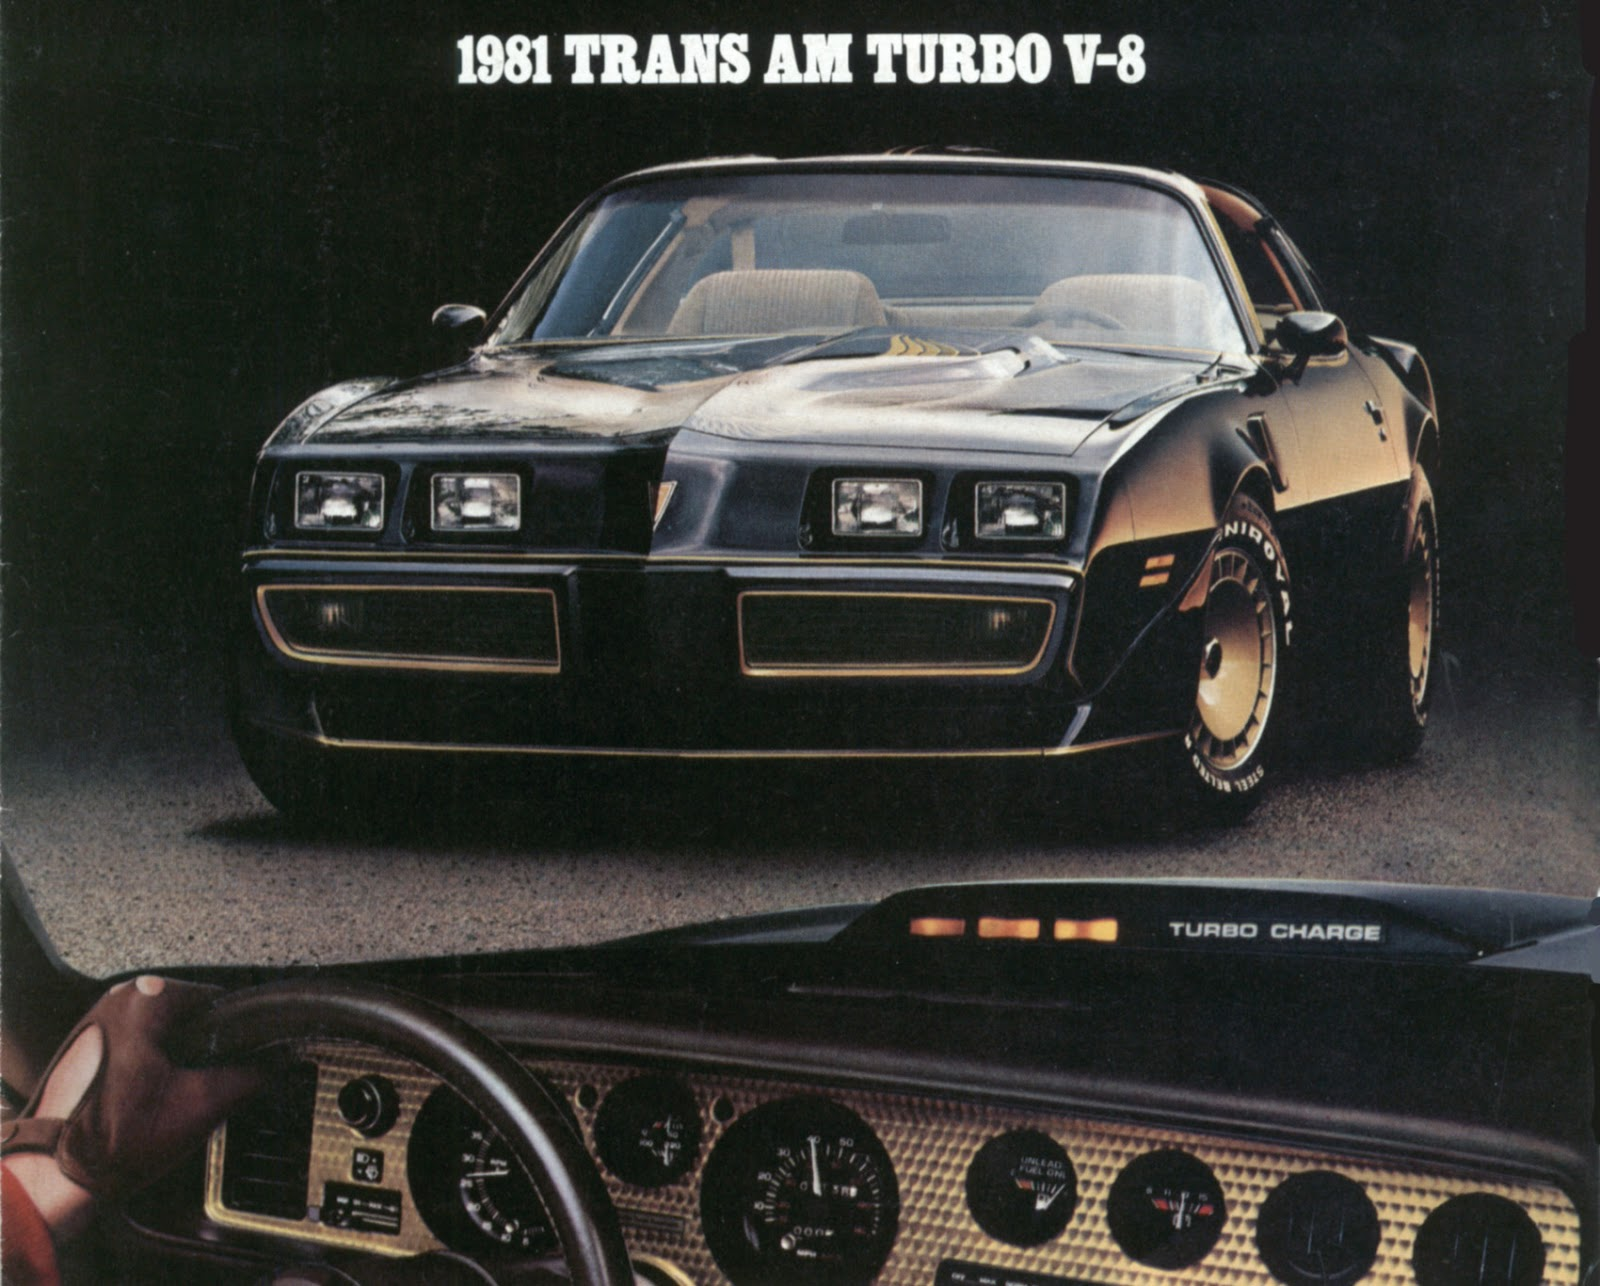 1980 1981 49 Turbo Trans Am Slacker Or Misunderstood Underdog 1960 Pontiac Catalina Wiring Diagrams